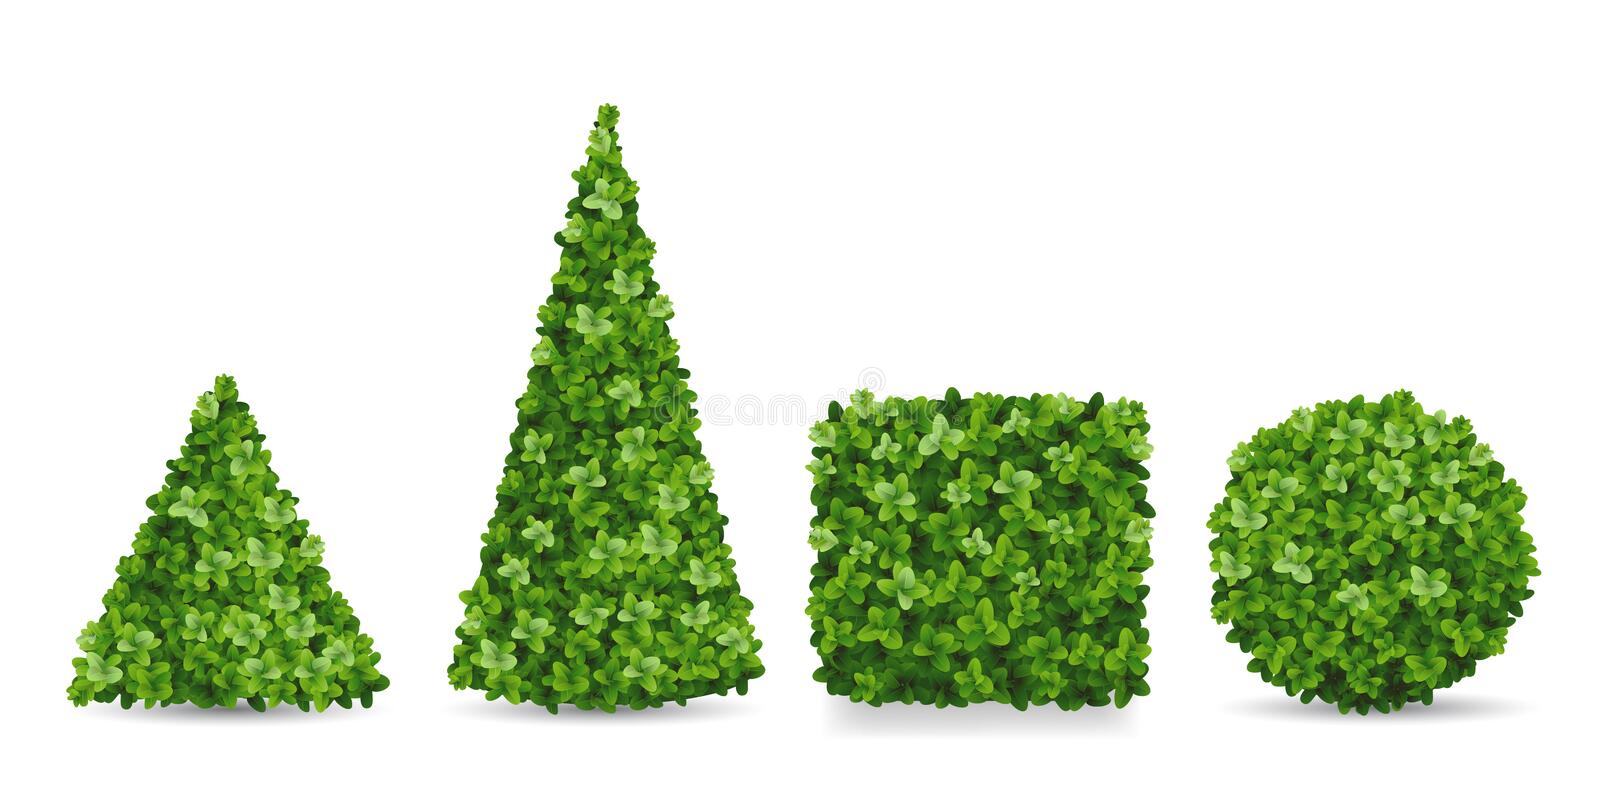 Boxwood shrubs of different topiary forms royalty free stock photo